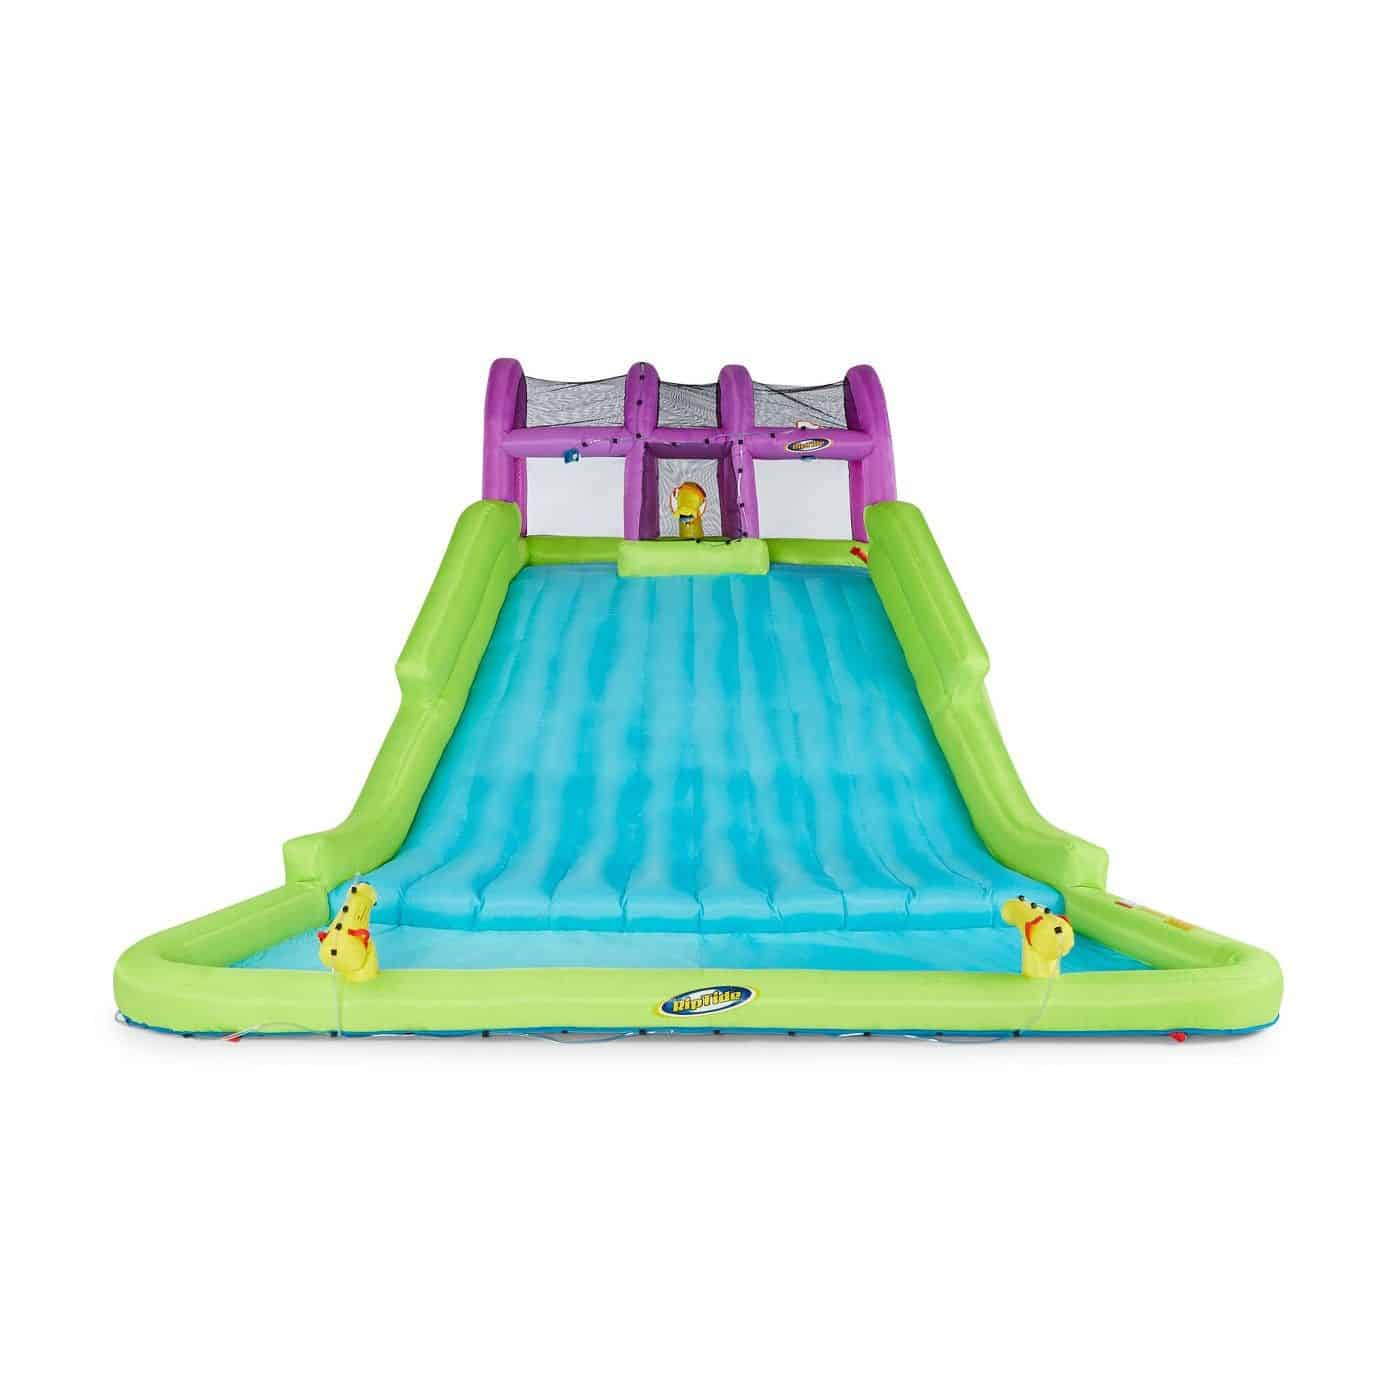 Kahuna 90808 Mega Blast Inflatable Backyard Kids Pool and Slide Water Park - Best kiddie pool with slider